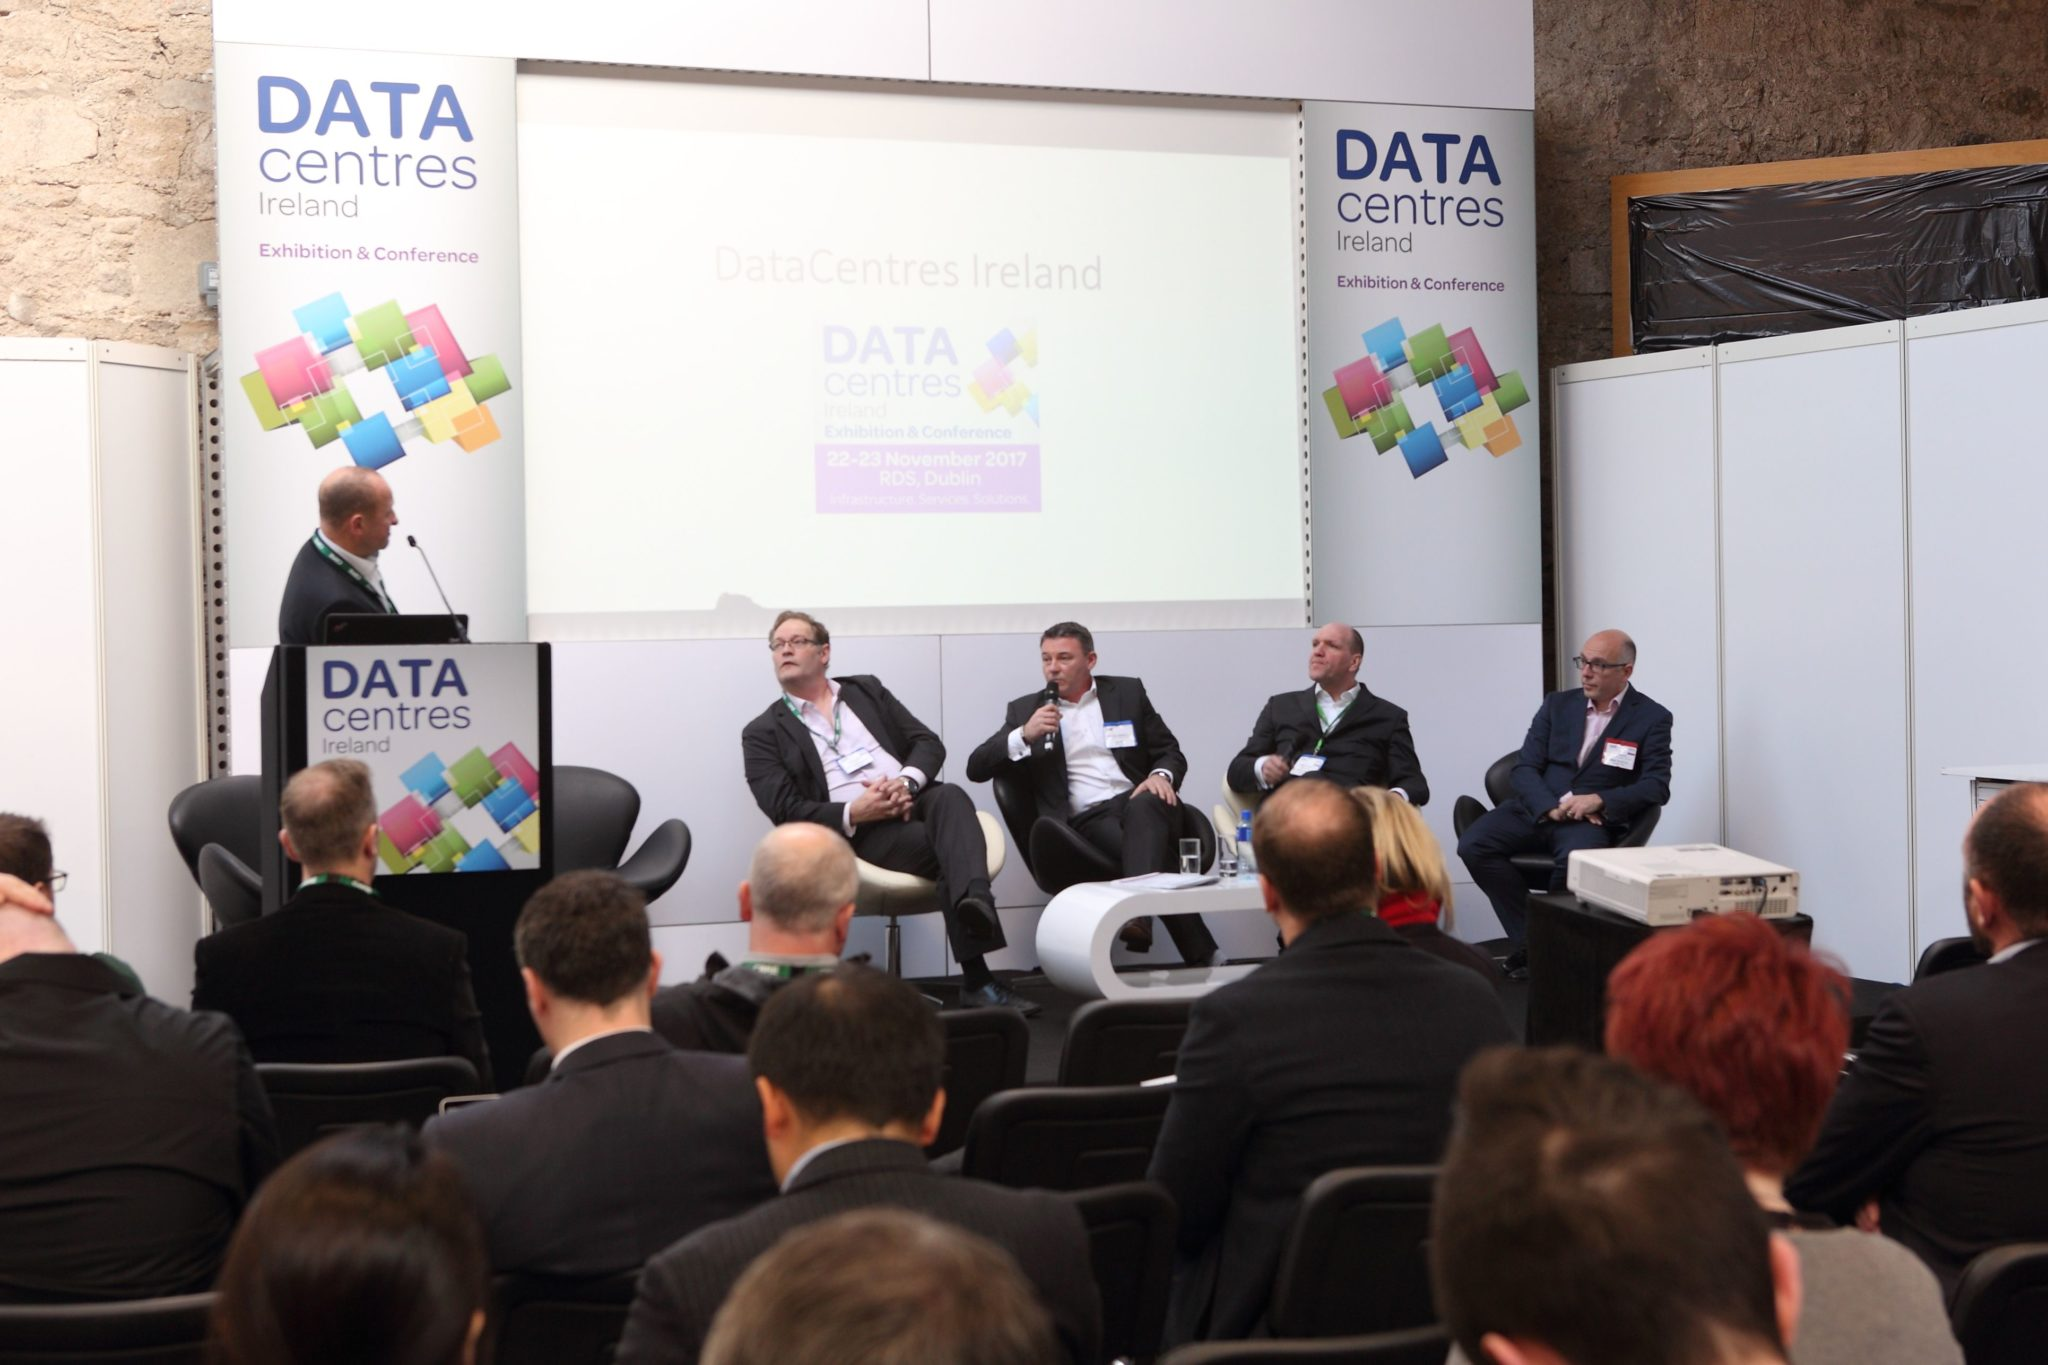 DataCentres Ireland Conference